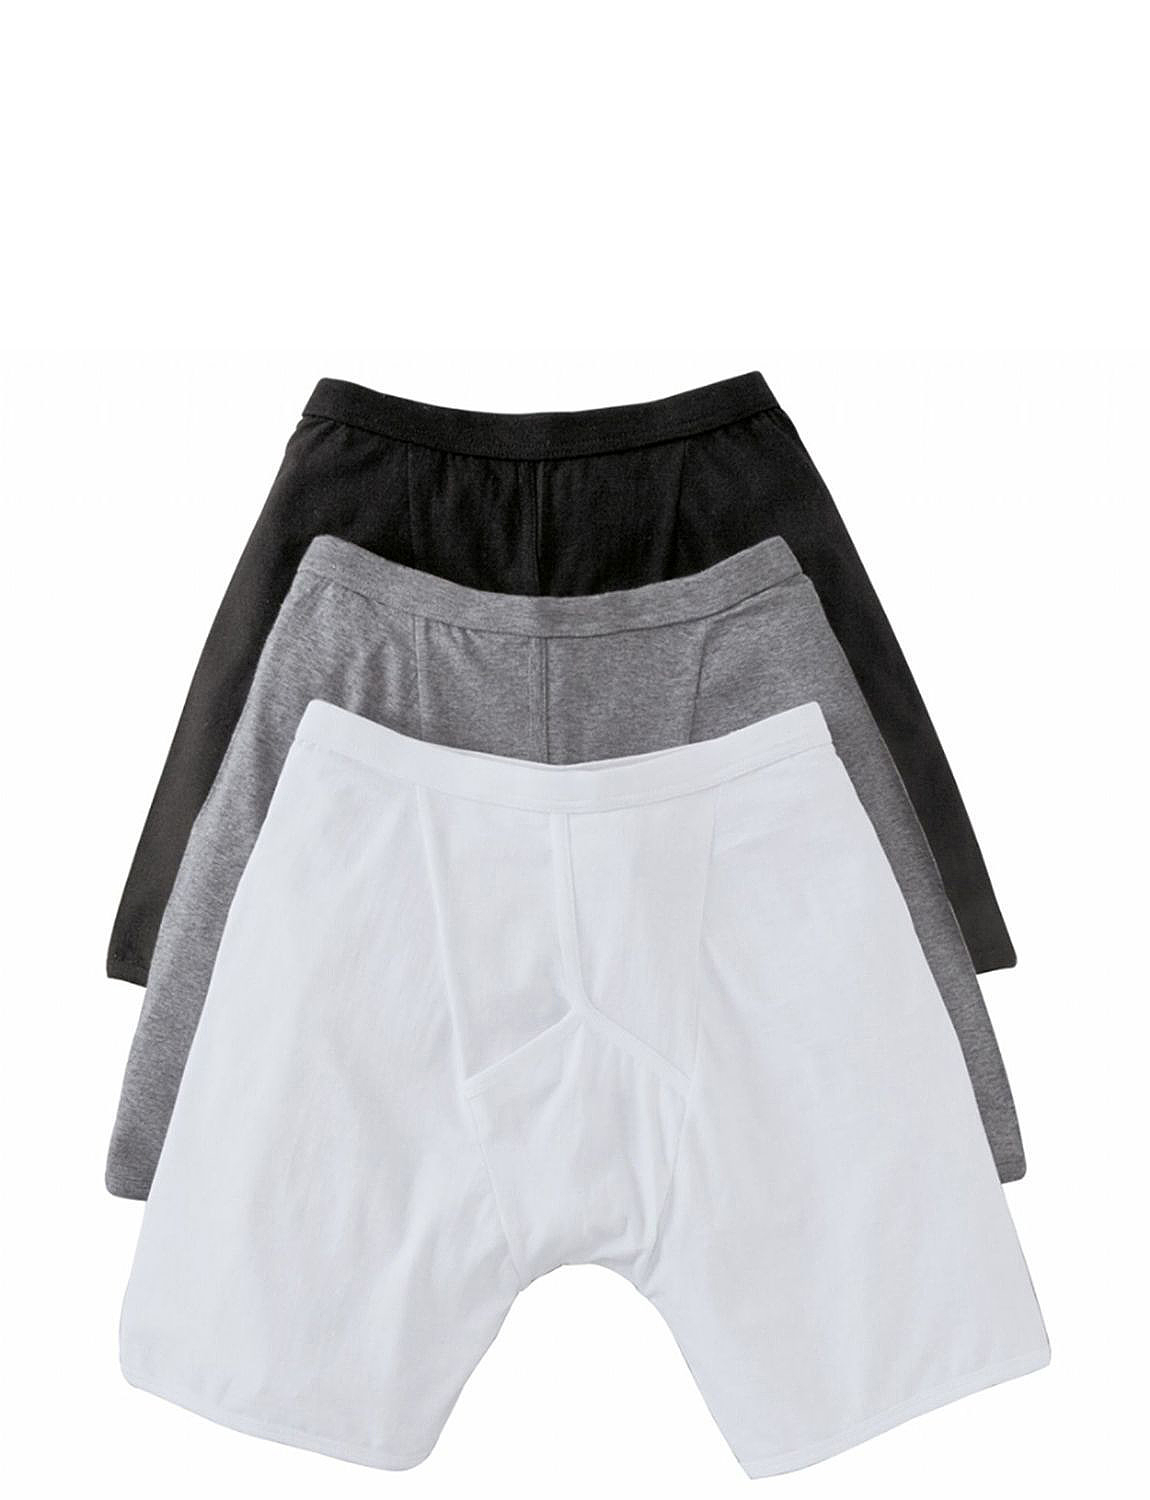 Pack of 3 Knitted Stretch Trunk - Assorted